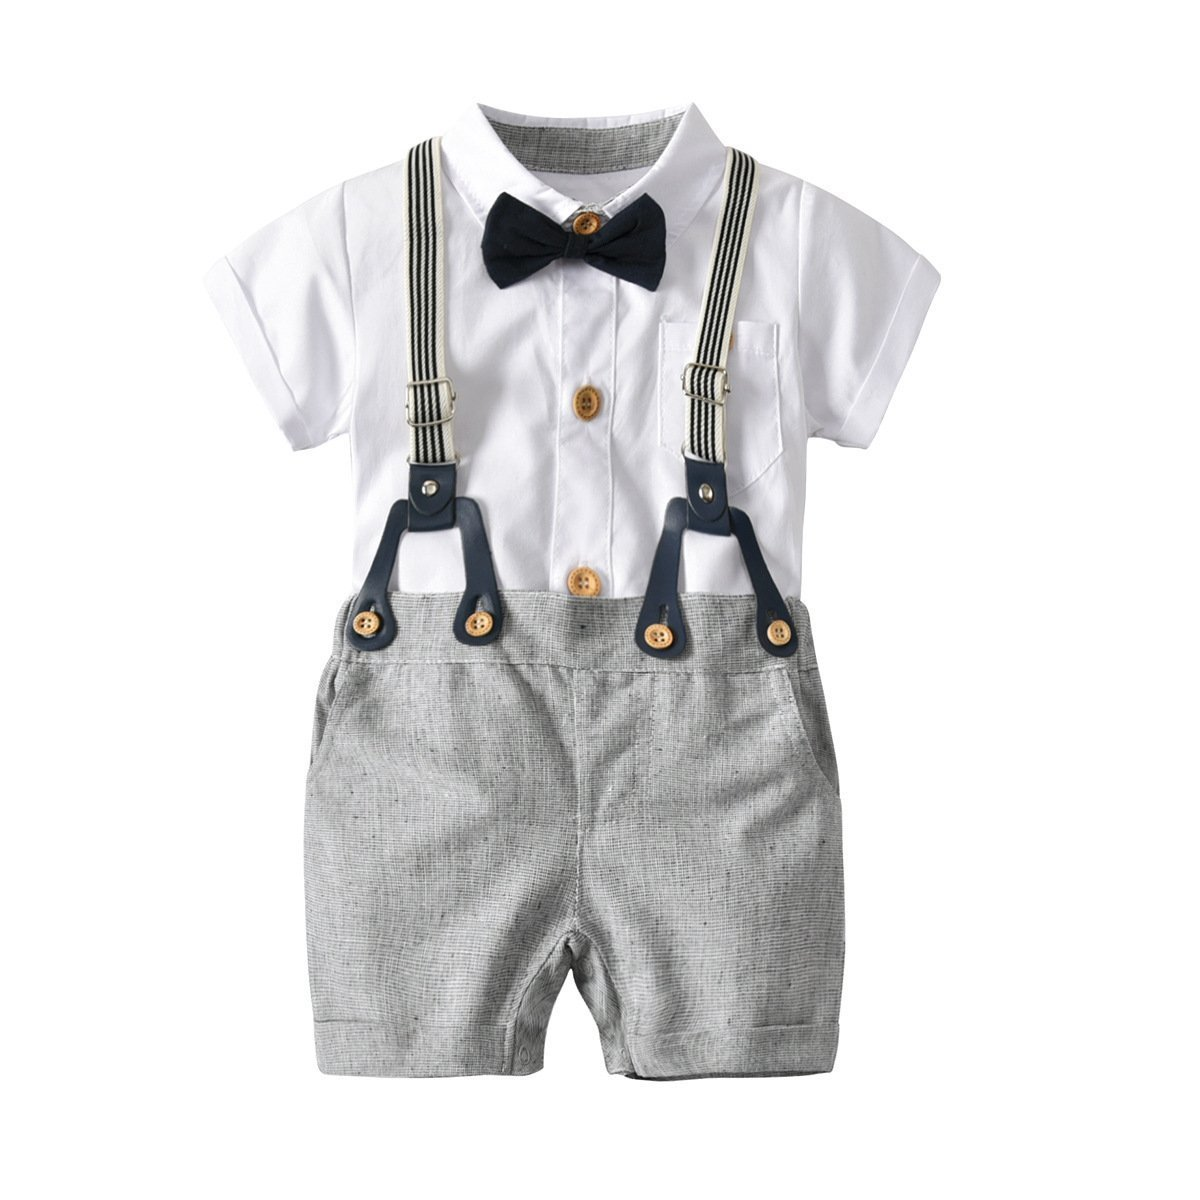 Infant Toddler Formal Suit 4 Pcs Set Bowie Suspender Romper Shorts Newborn Baby Boy Romper and Overall